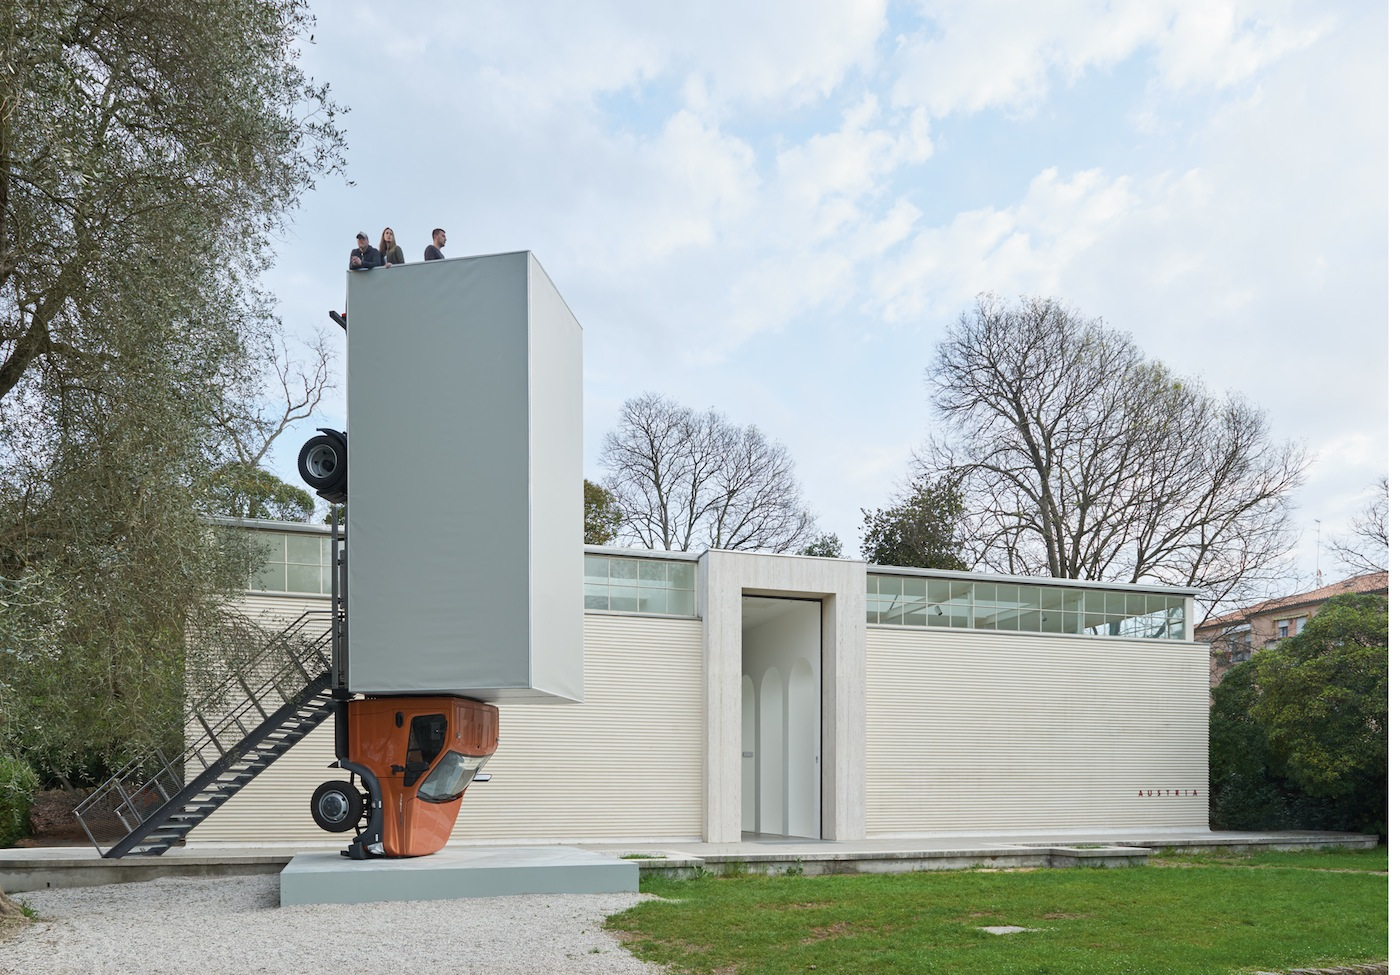 Erwin Wurm Stand quiet and look out over the Mediterranean Sea, 2016 – 2017 Performative One Minute Sculpture Beitrag Österreich-Pavillon / Contribution Austrian Pavillon Truck, Mixed Media H 874 x B 240 x L 274 cm | H 344 x B 94 1/2 x L 107 3/4 in Unique Photo: Studio Erwin Wurm Copyright: Bildrecht, Vienna 2017